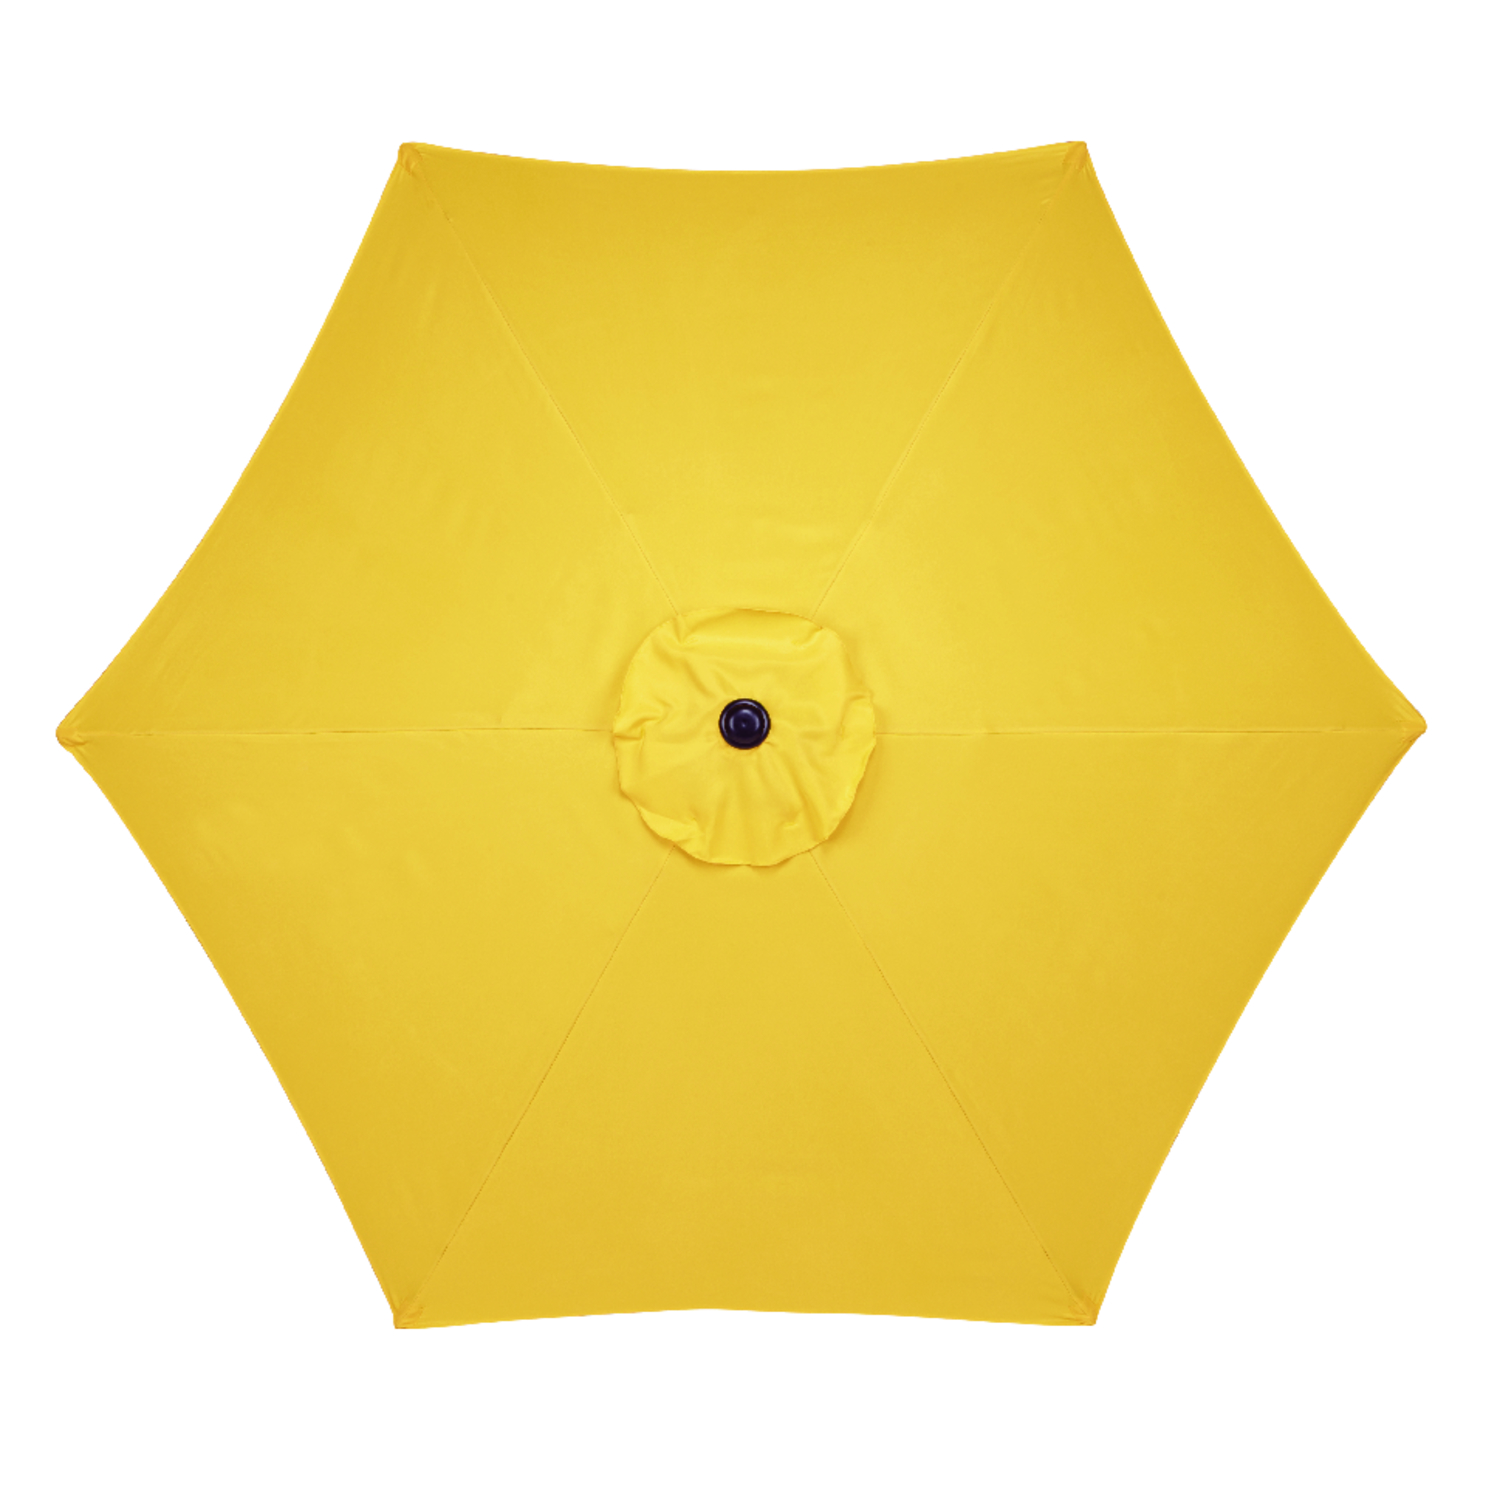 Tiltable Yellow Patio Umbrella - Living Accents MARKET 9 Ft. Tiltable Yellow Patio Umbrella - Ace